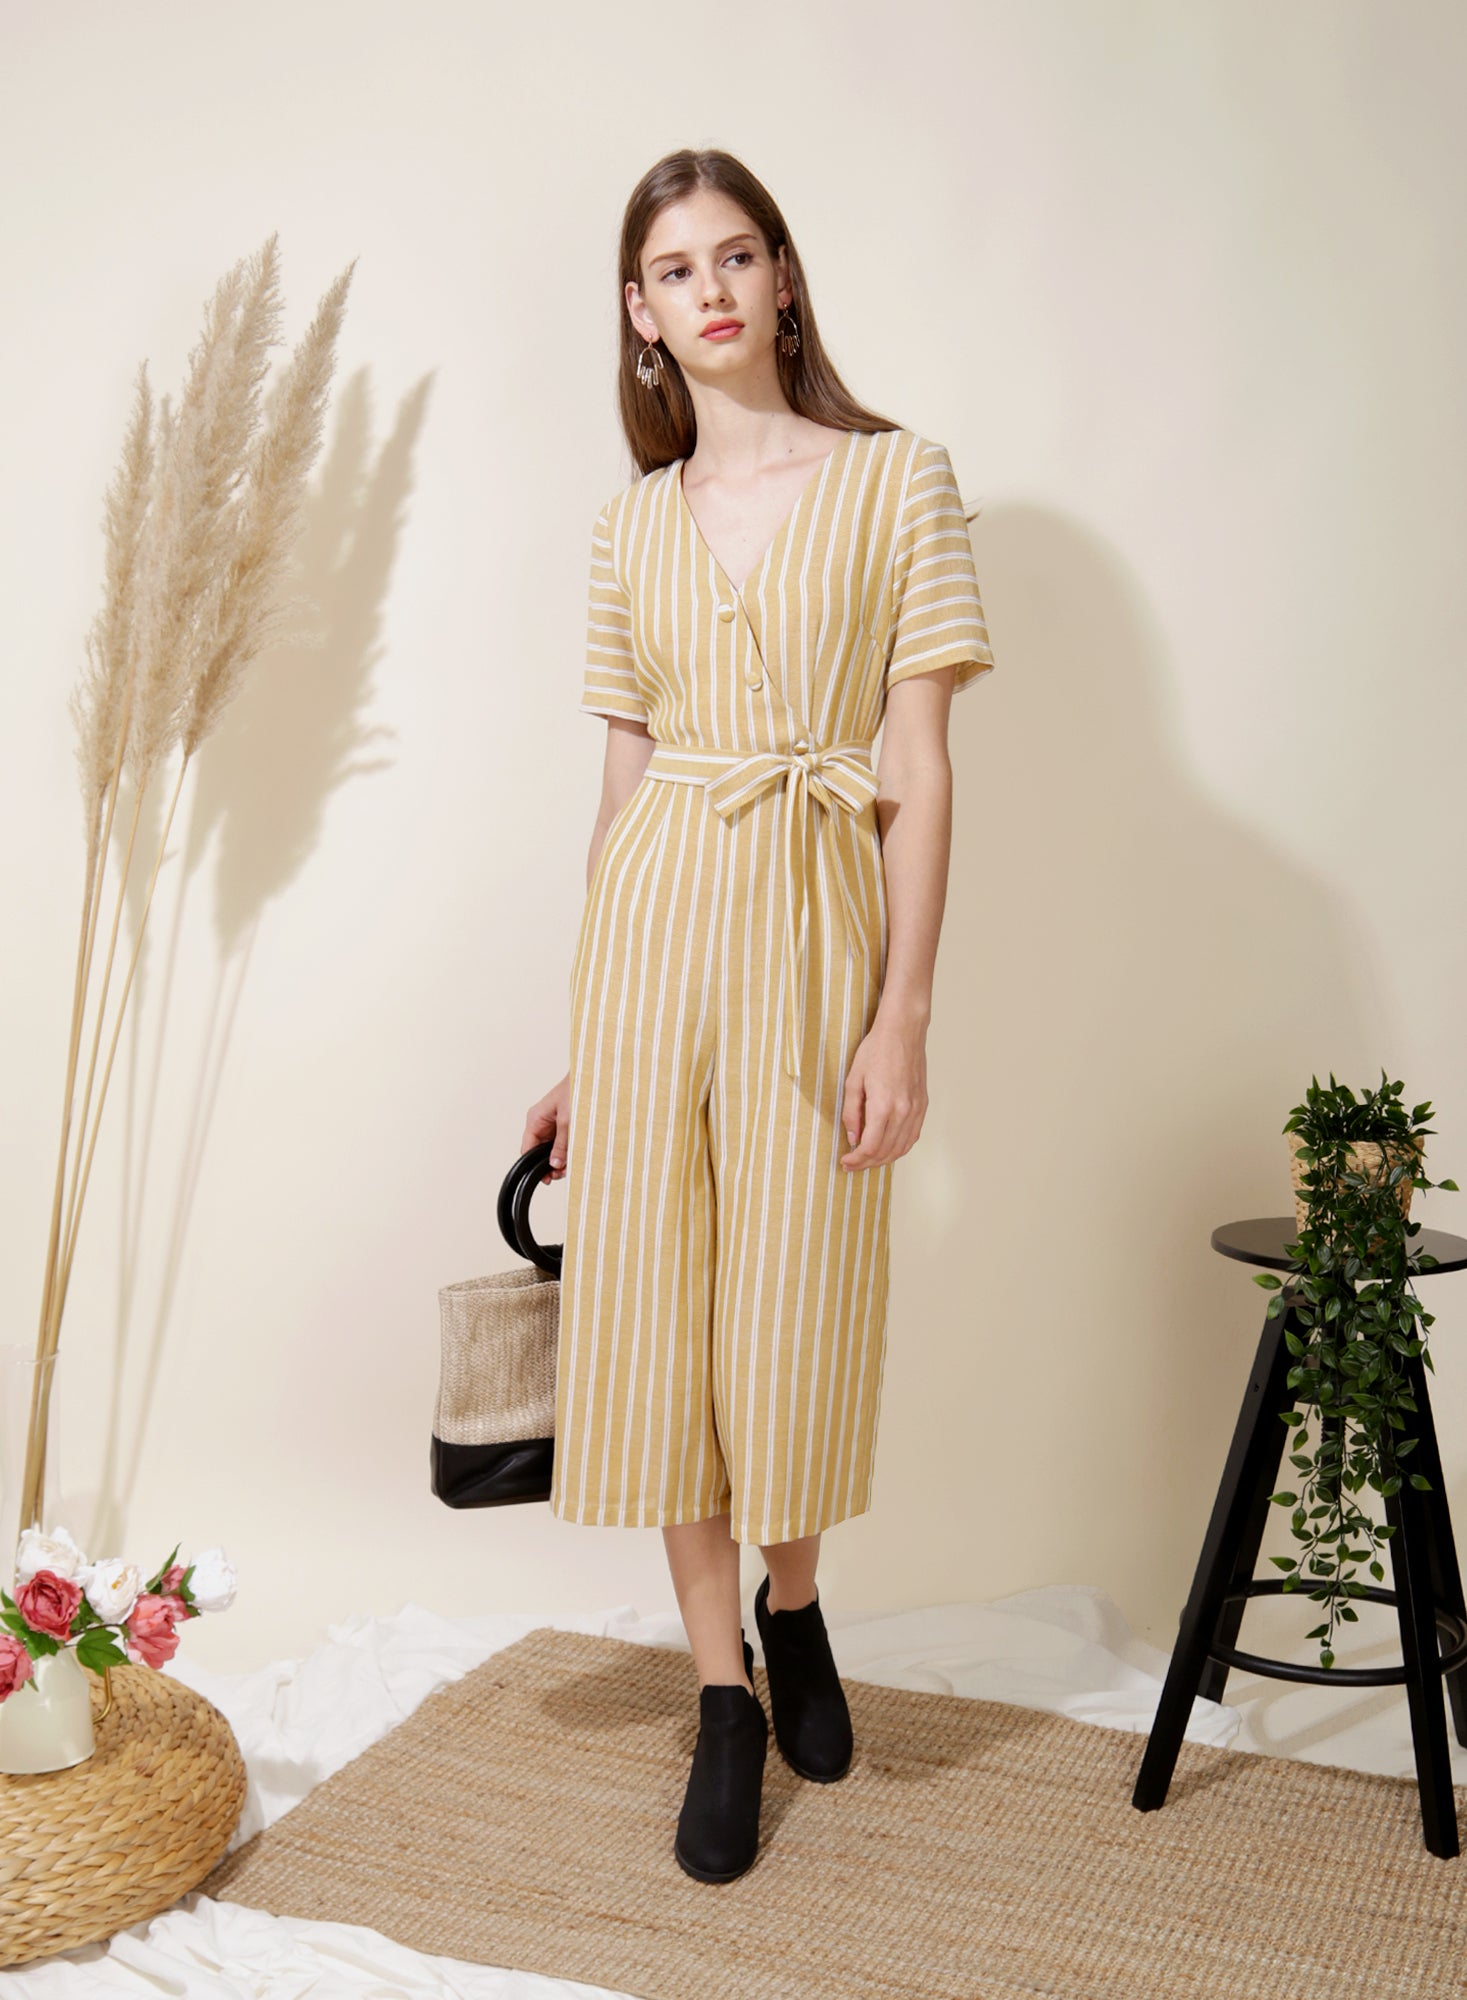 Celebrate Striped Jumpsuit (Yellow) at $ 43.50 only sold at And Well Dressed Online Fashion Store Singapore